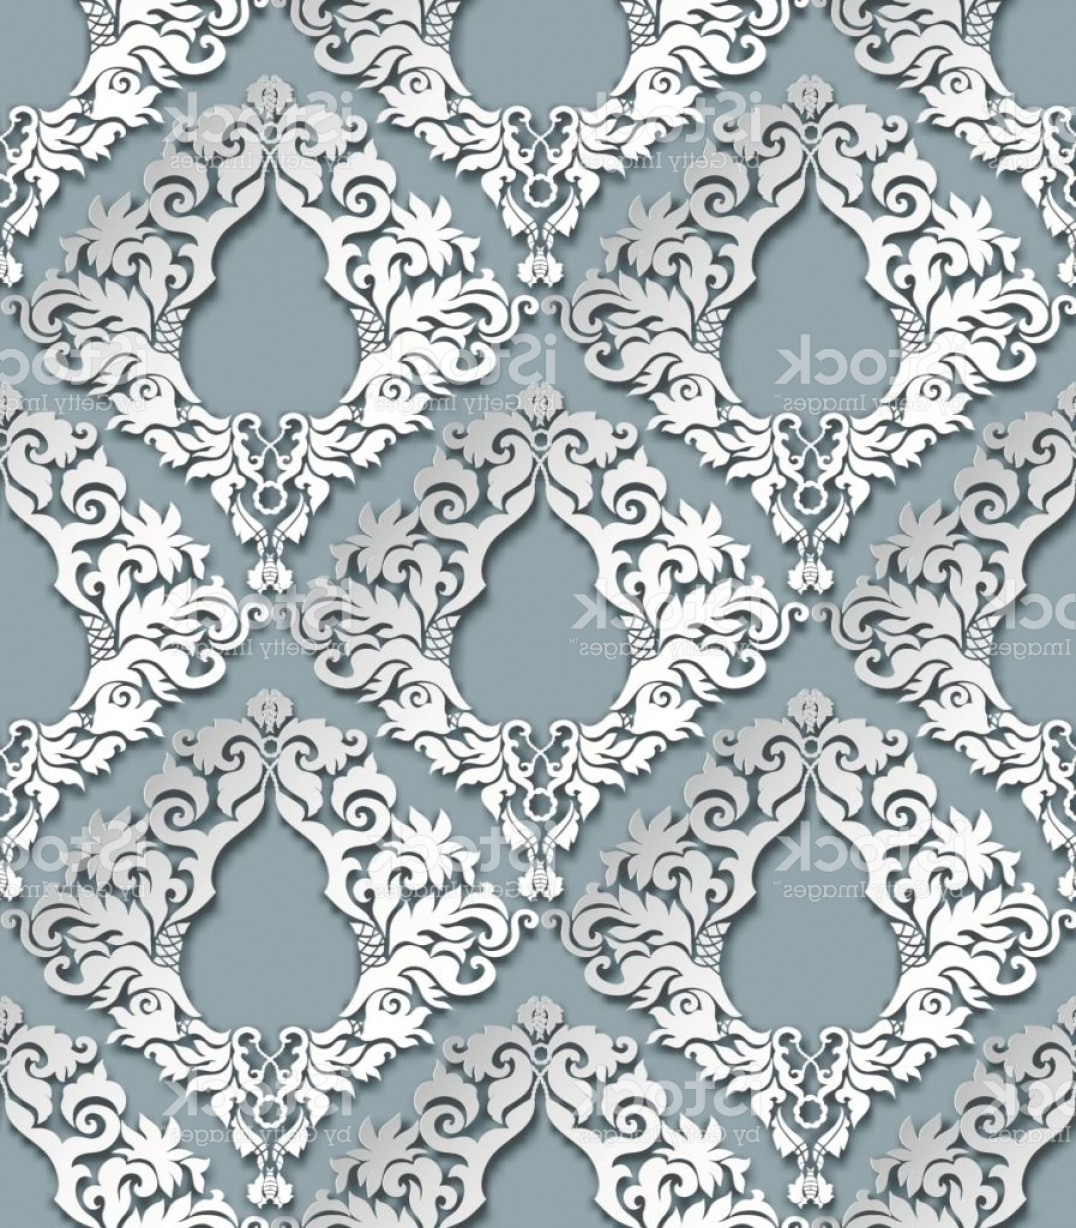 Damask Background Vector Art: Seamless D Damask Pattern Gm